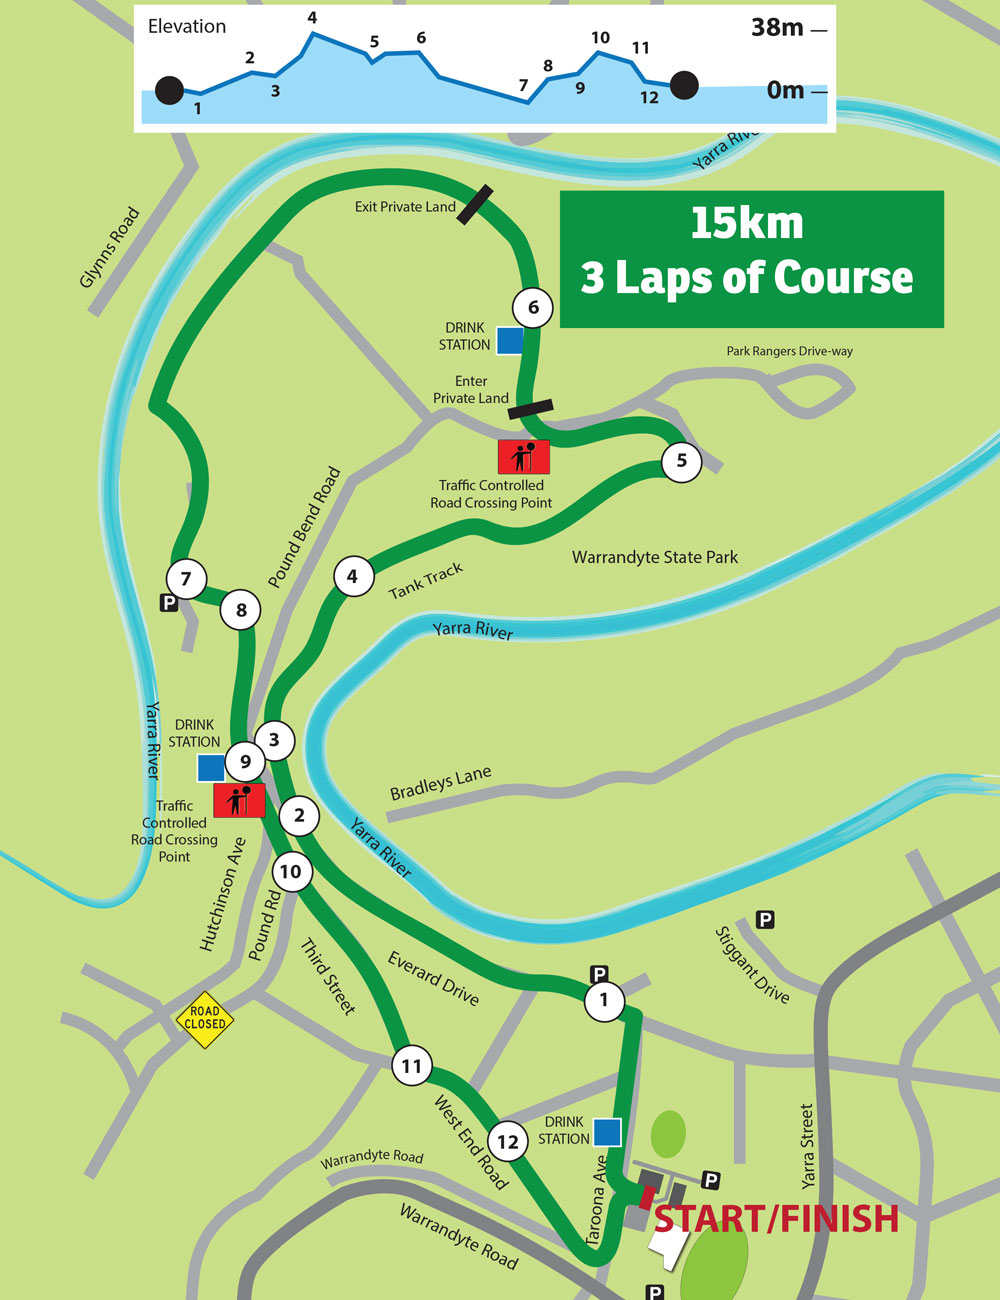 15km Course with Elevation for Run Warrandyte